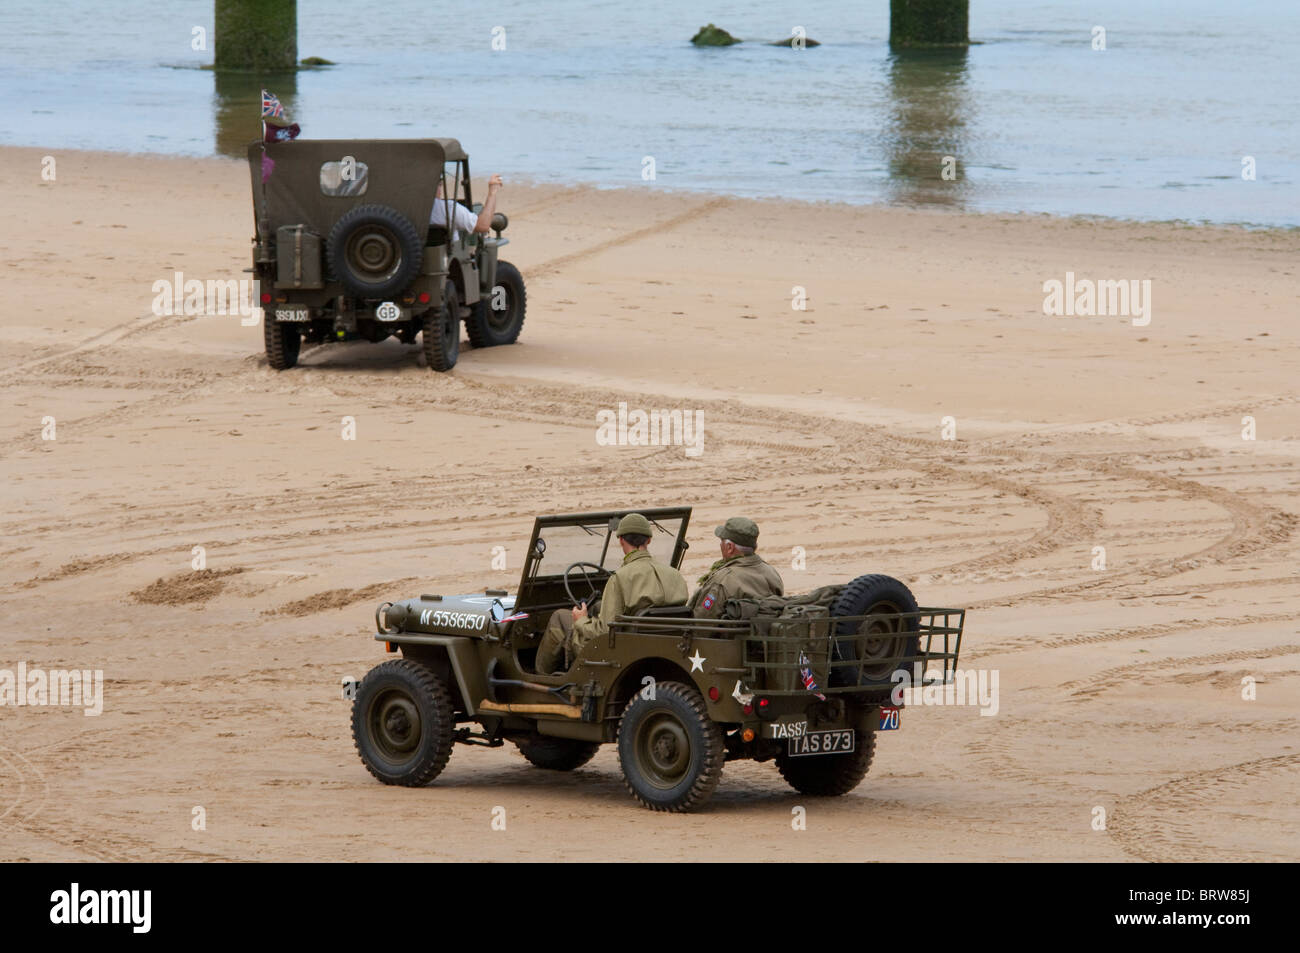 France Normandy Saint Laurent Sur Mer Omaha Beach Vintage Jeep